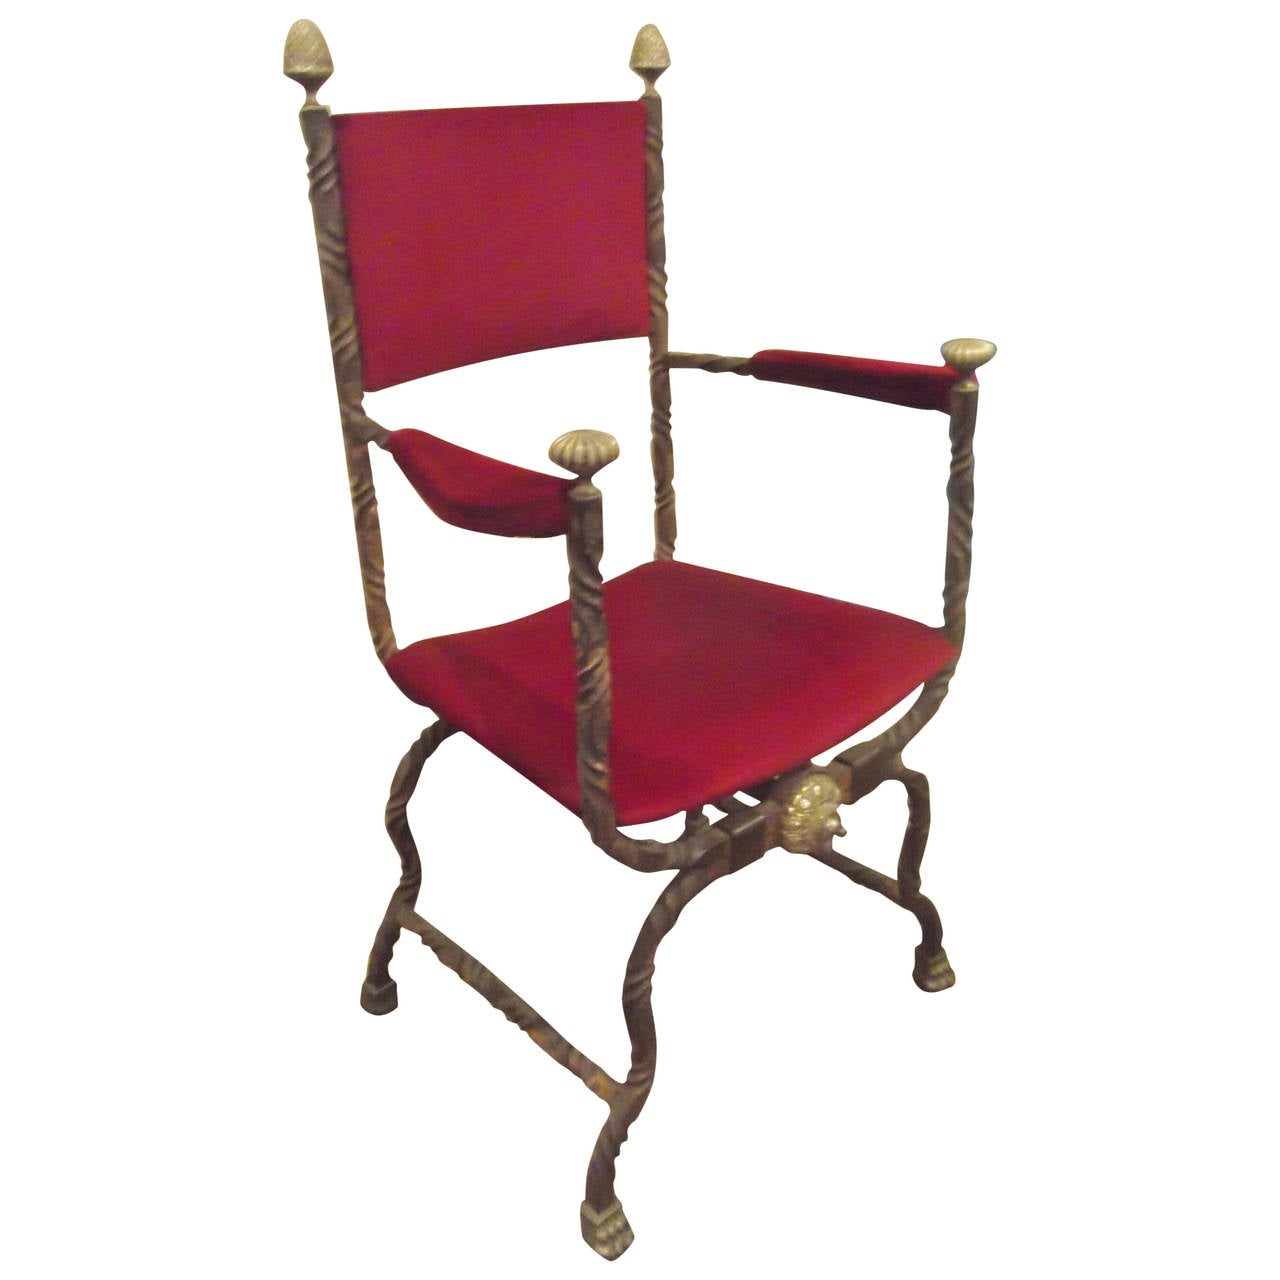 hand wrought iron and cast brass savonarola chair at 1stdibs. Black Bedroom Furniture Sets. Home Design Ideas